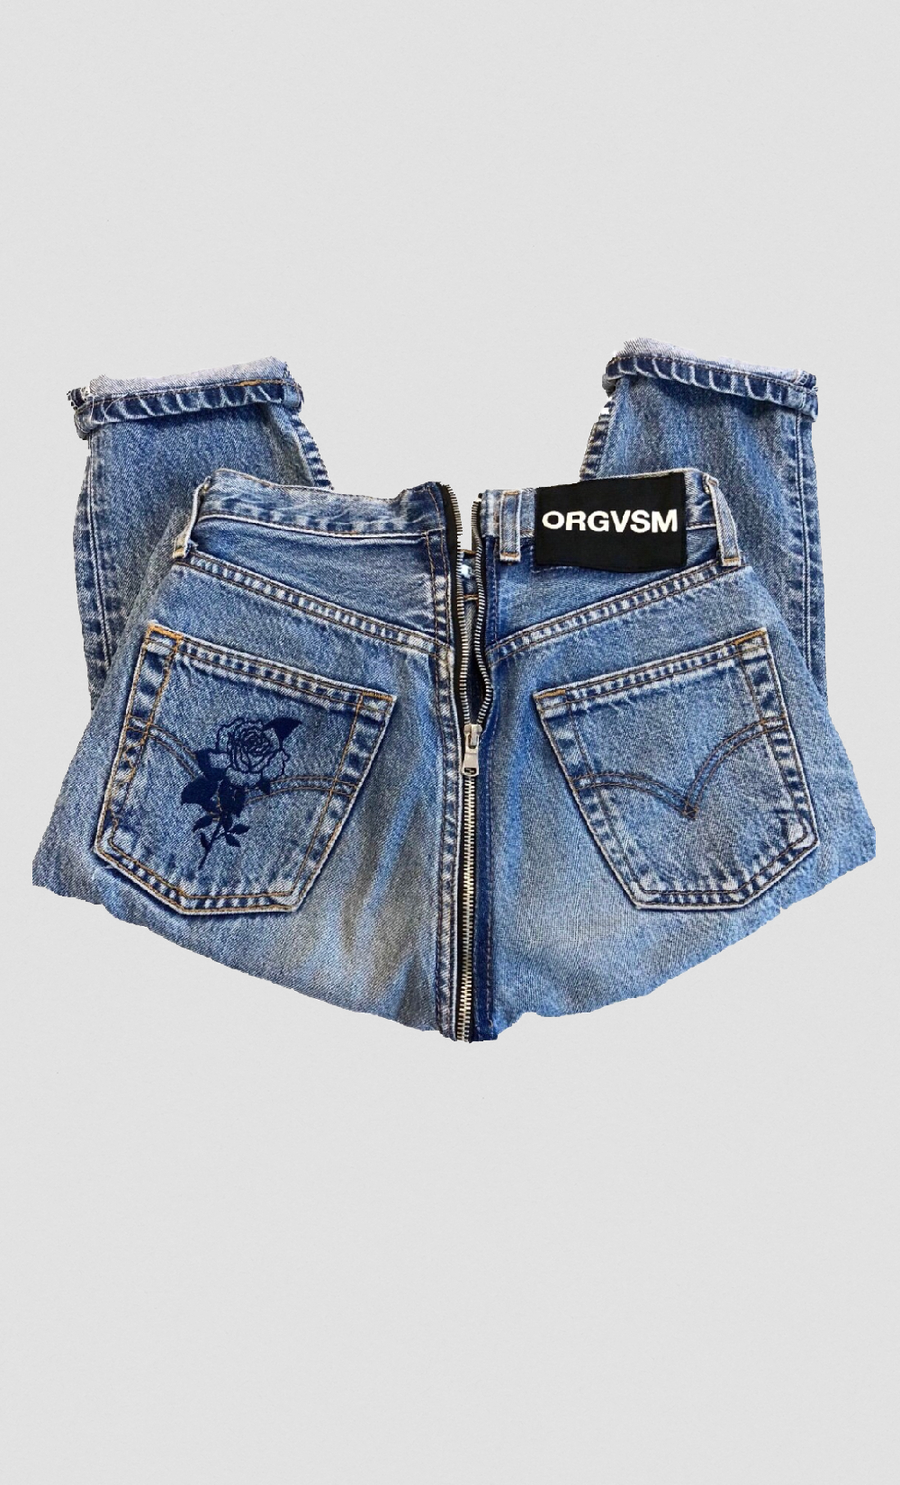 Image of ORGVSM //RETRO ZIP JEANS